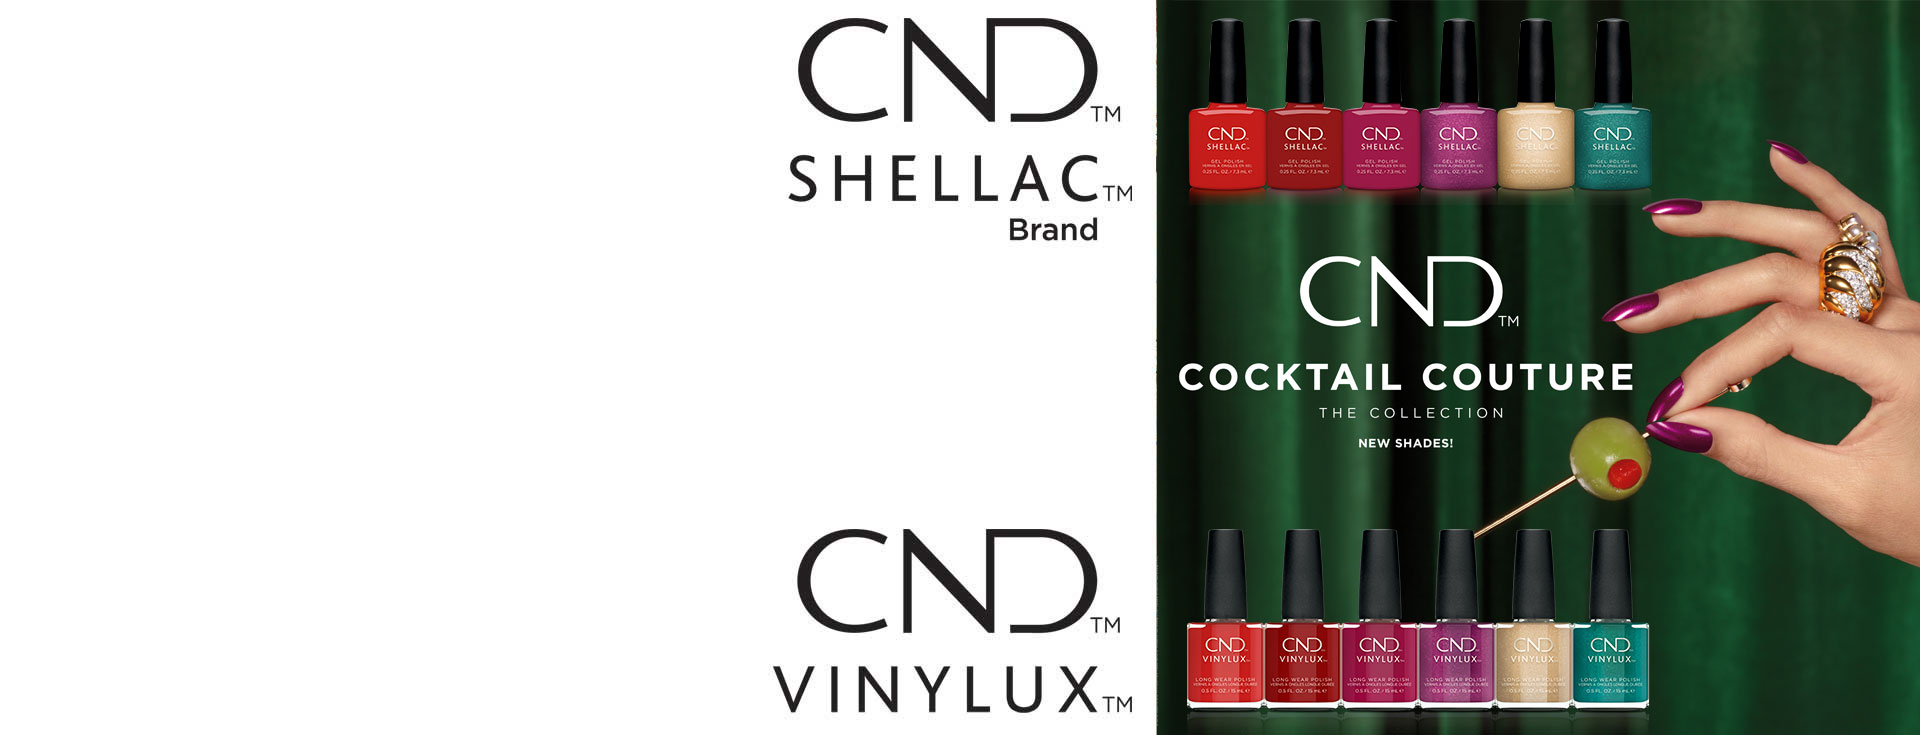 cocktail-couture-shellac-vinylux-banner-main